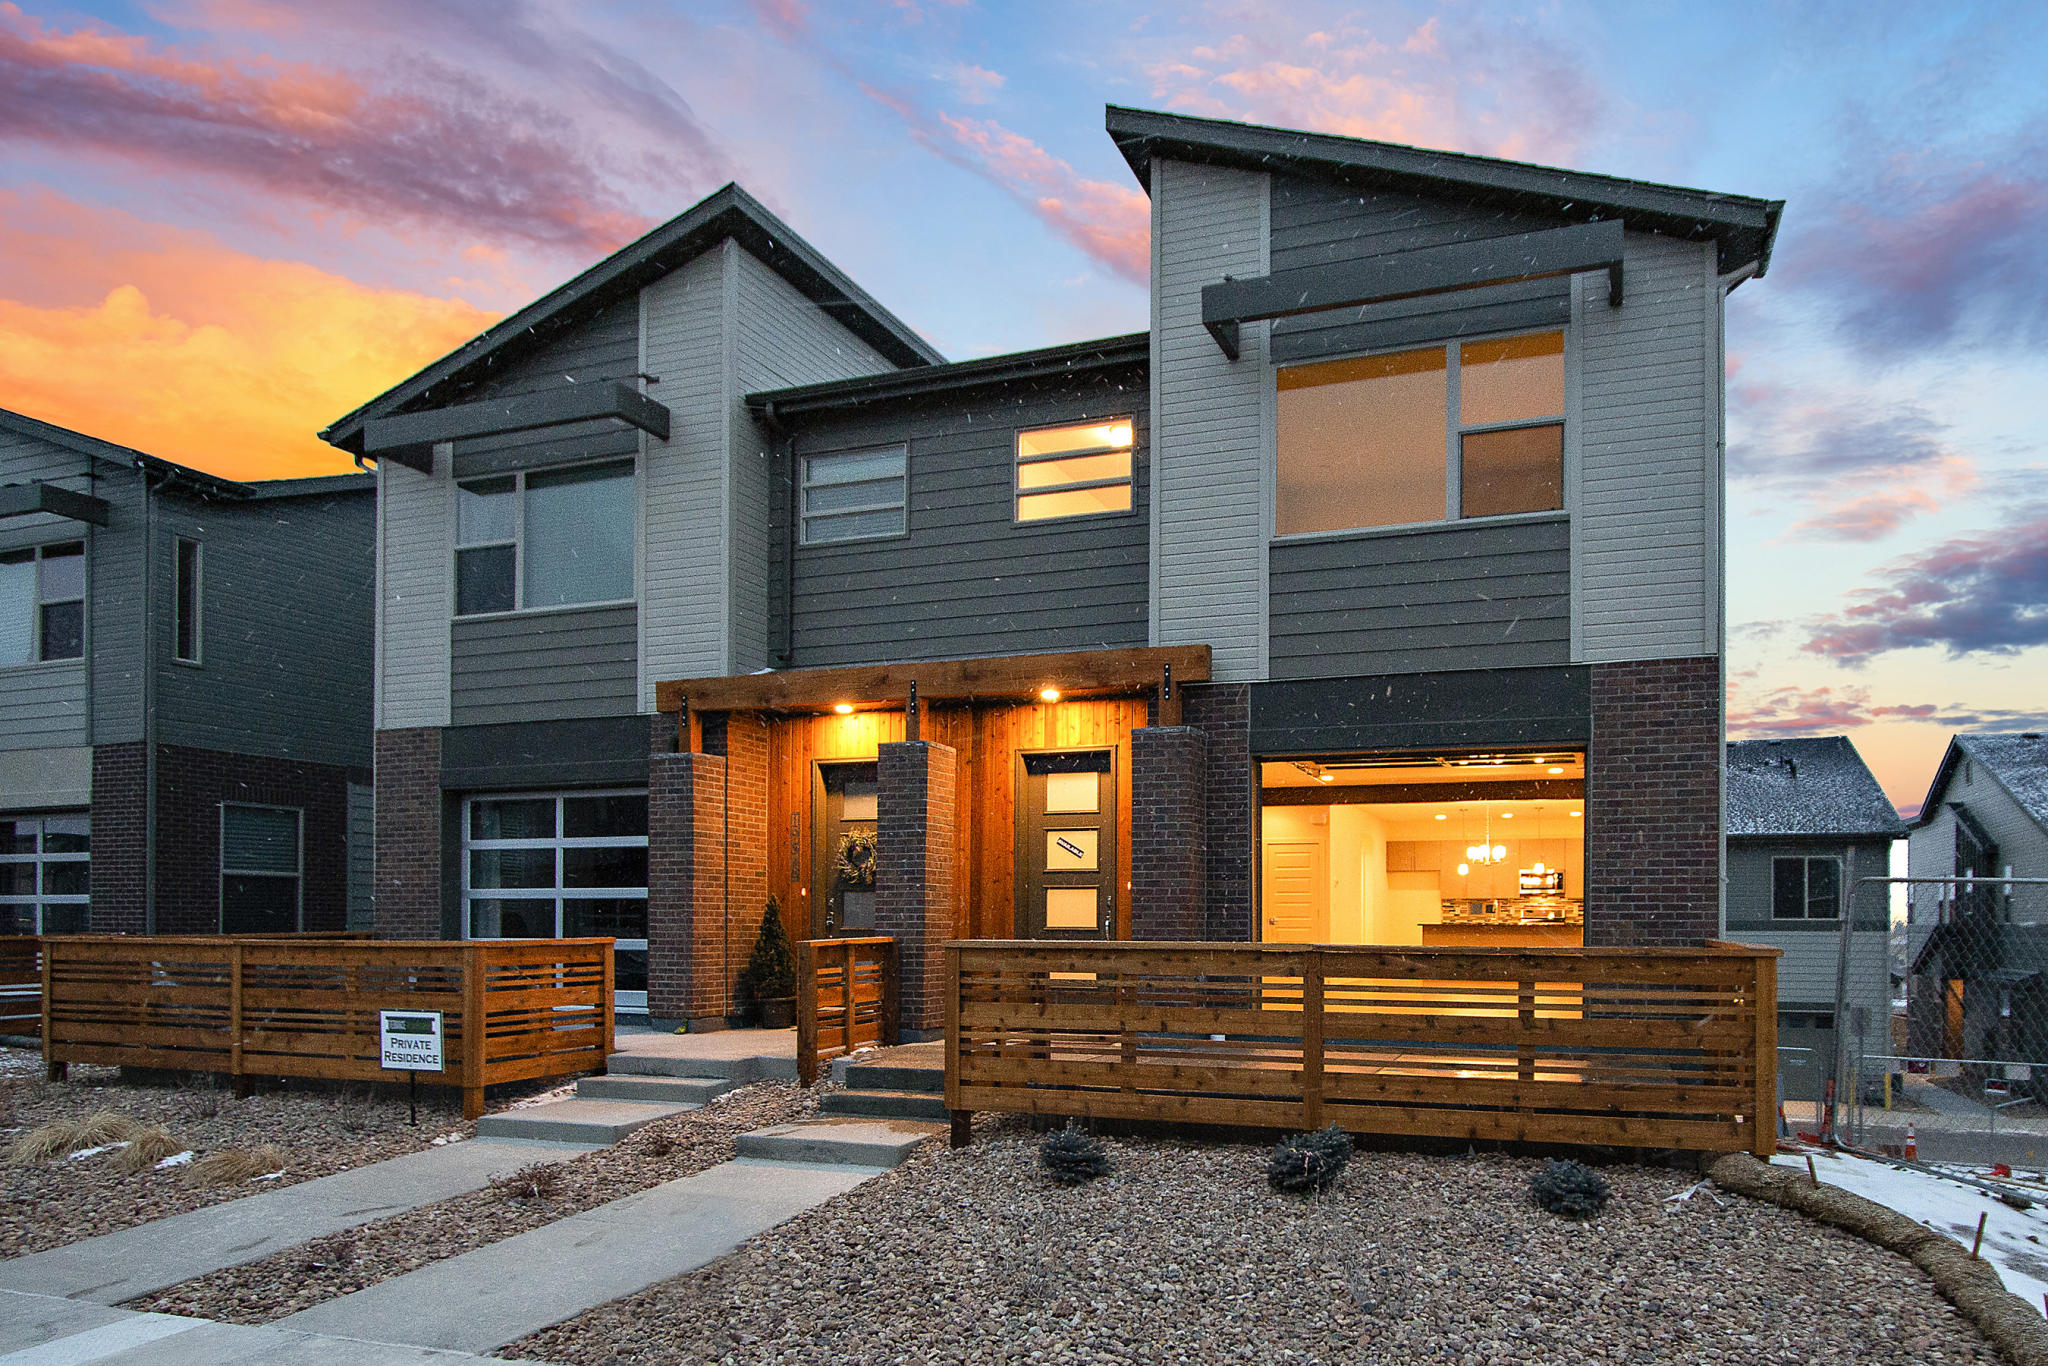 Sunset Terrace At Quincy Overlook By Terrace Townhomes New